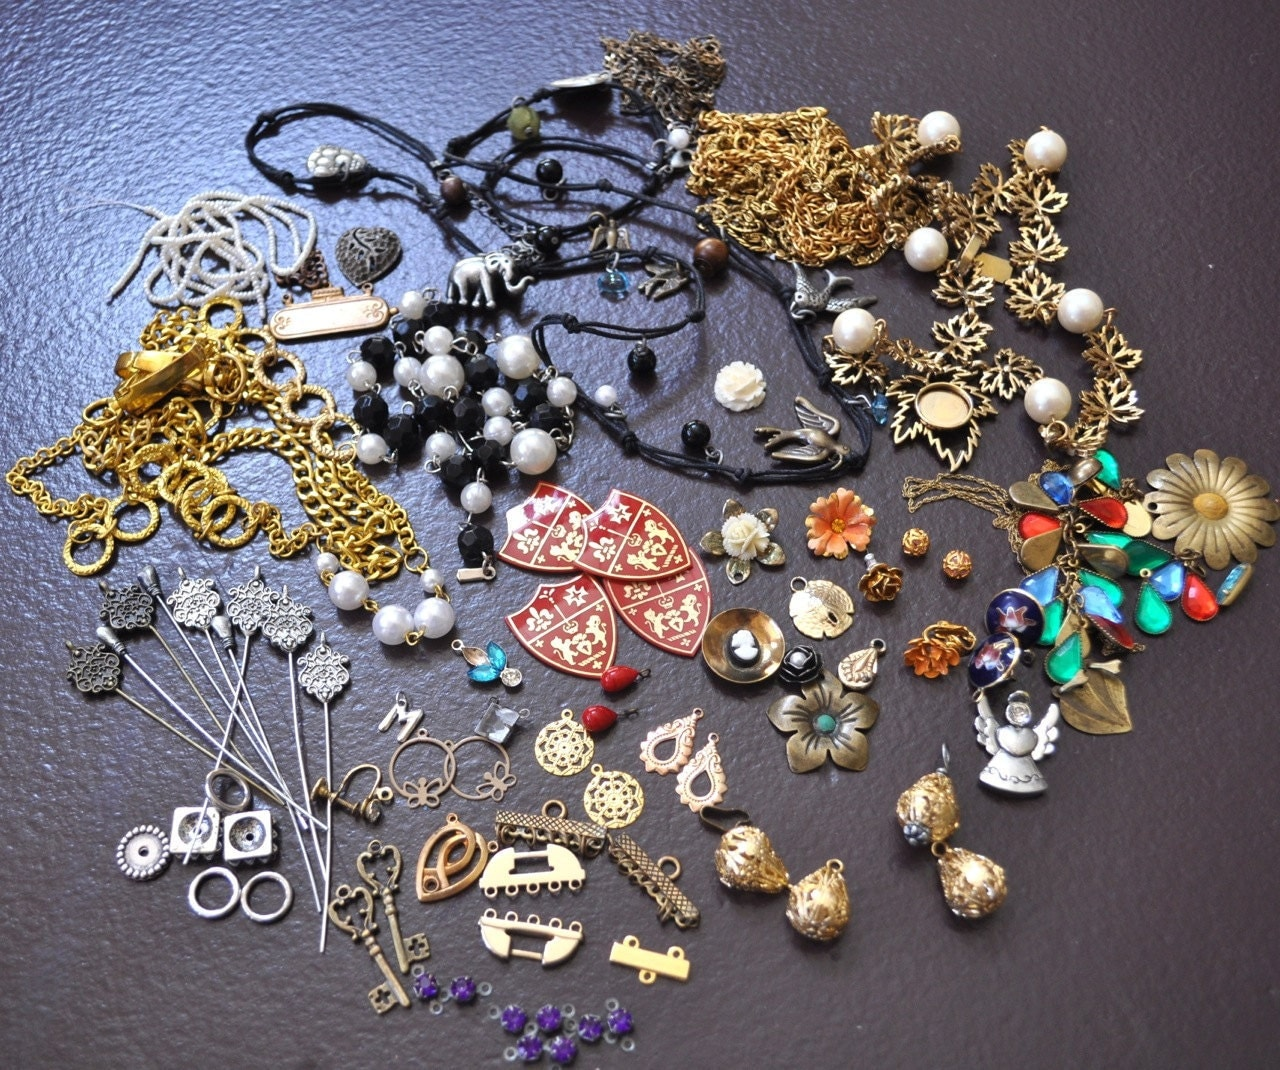 jewelry supply supplies jewelry supplies 6066